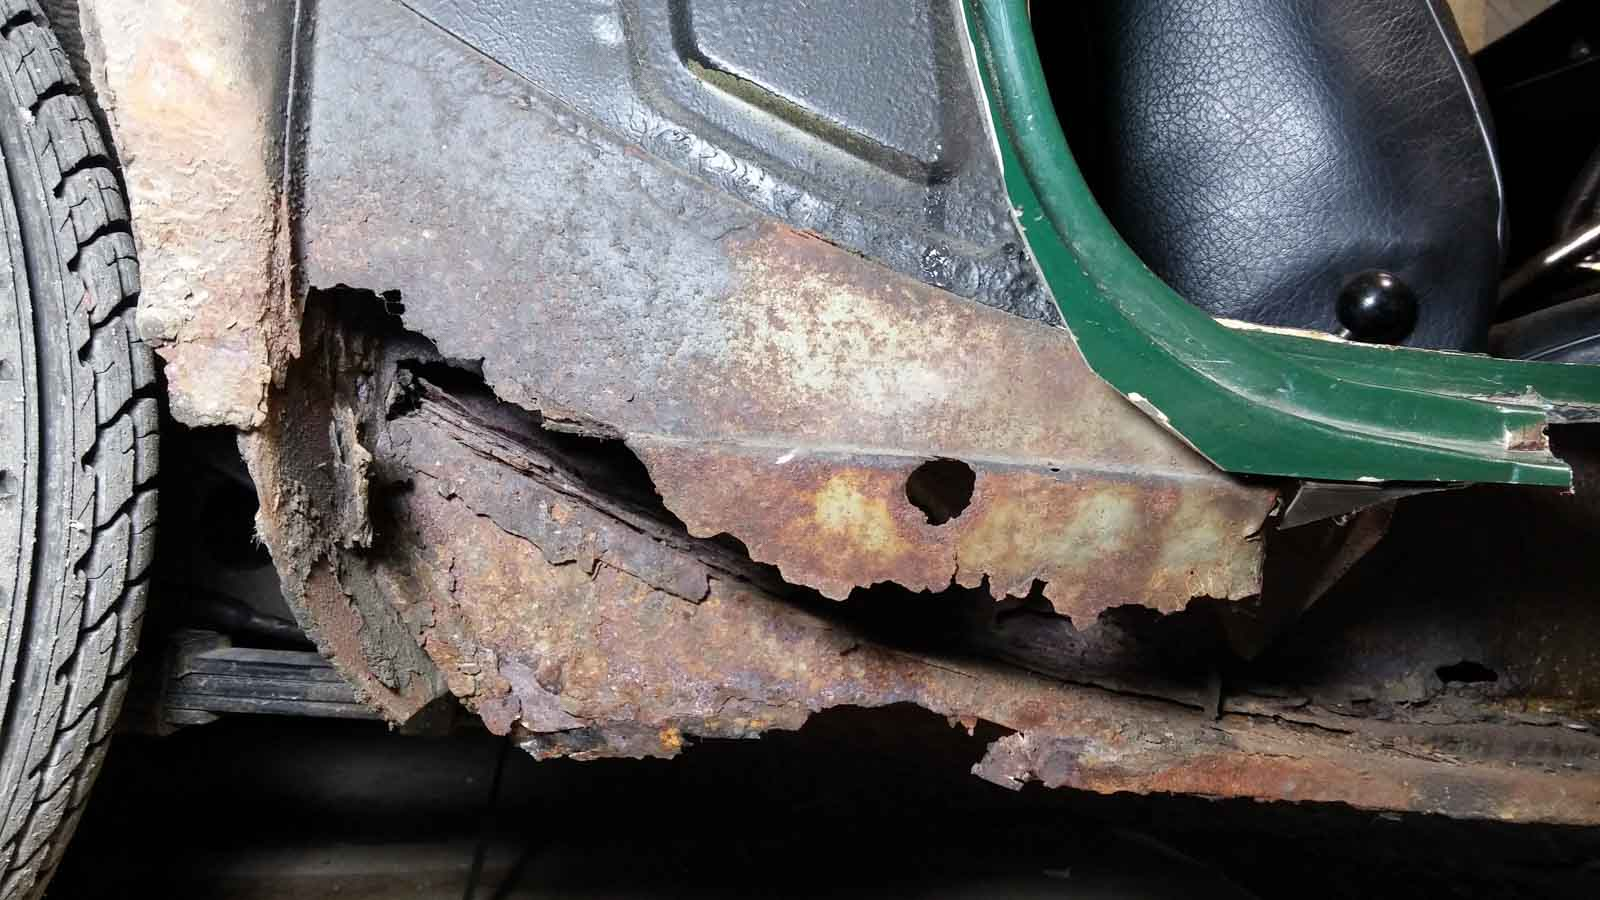 Rusted out dogleg, driver's side